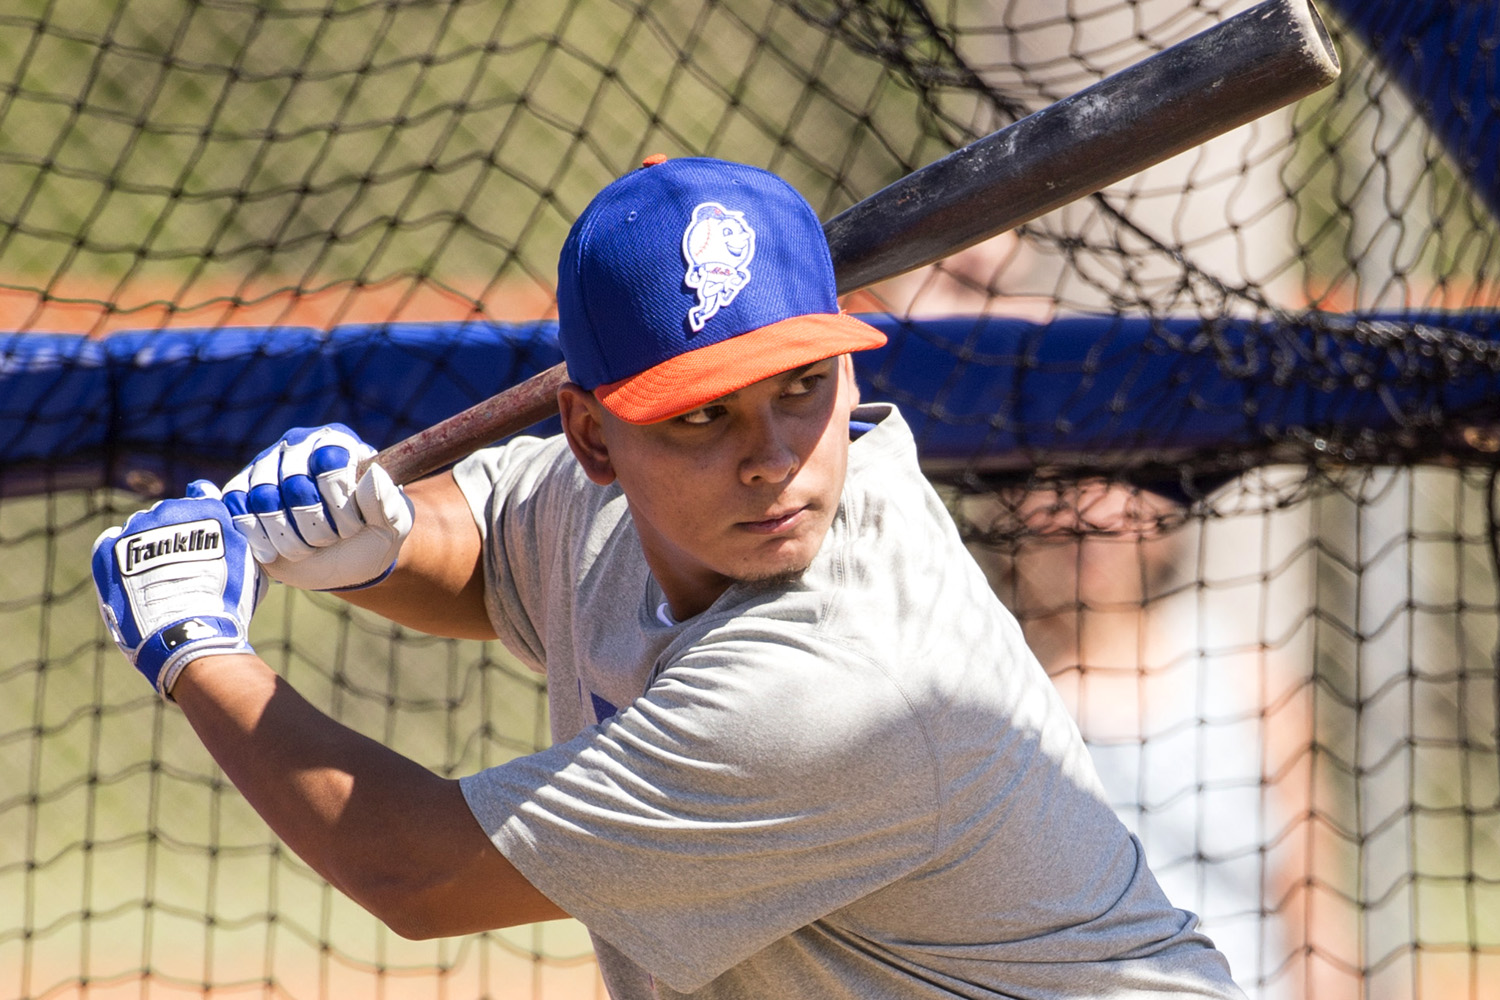 New York Mets Spring Training at their Minor League practice facility located within Tradition Field in Florida